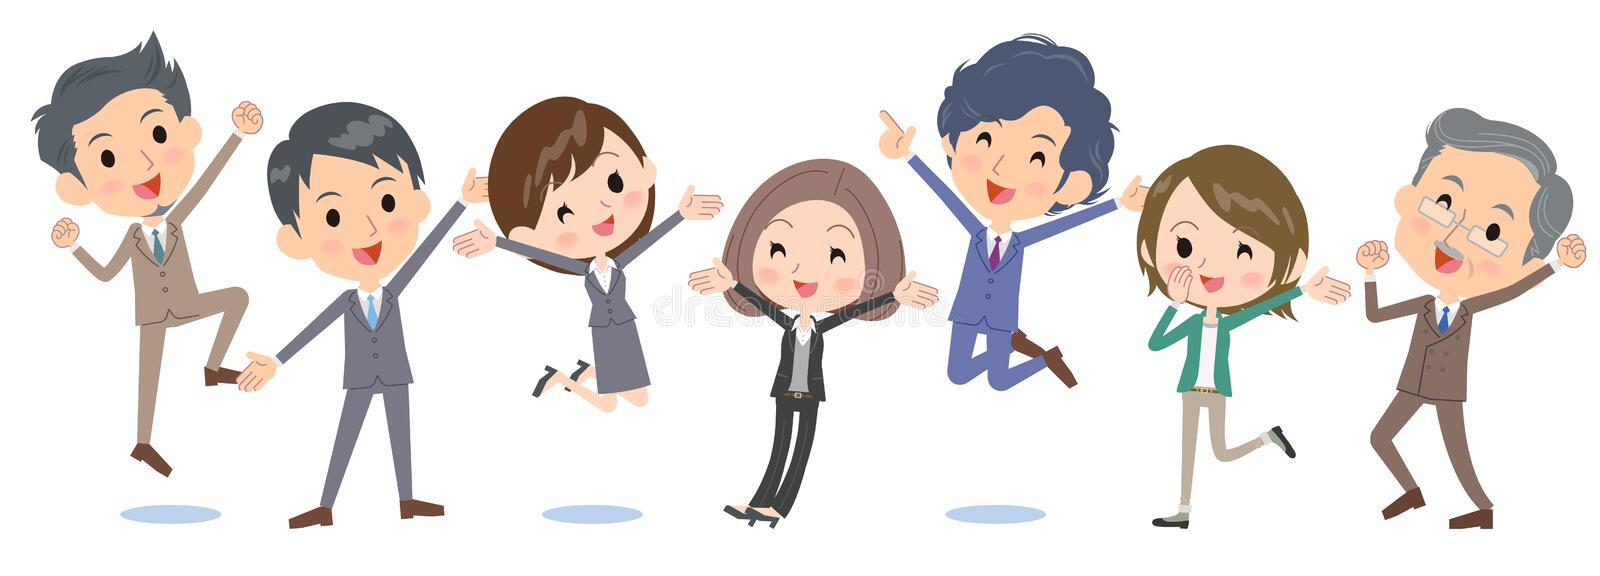 Business people_jump happy side by side vector illustration